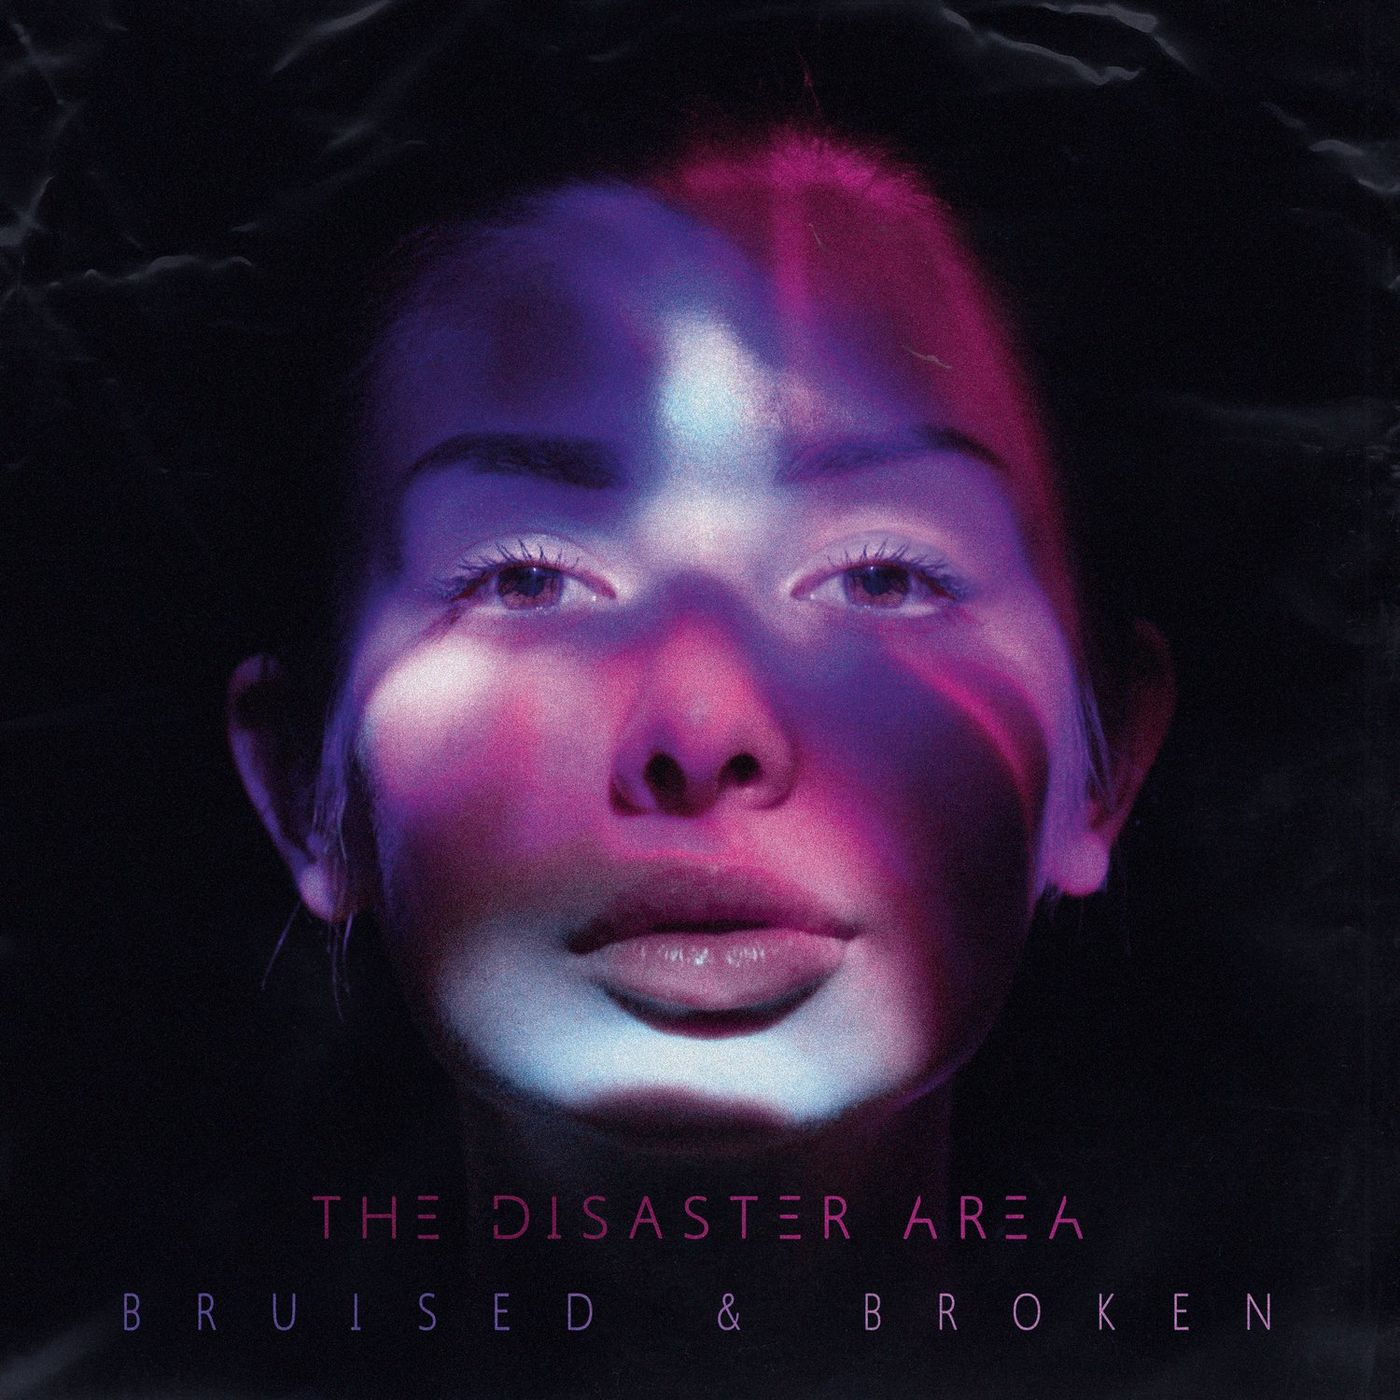 The Disaster Area - Bruised & Broken [single] (2020)